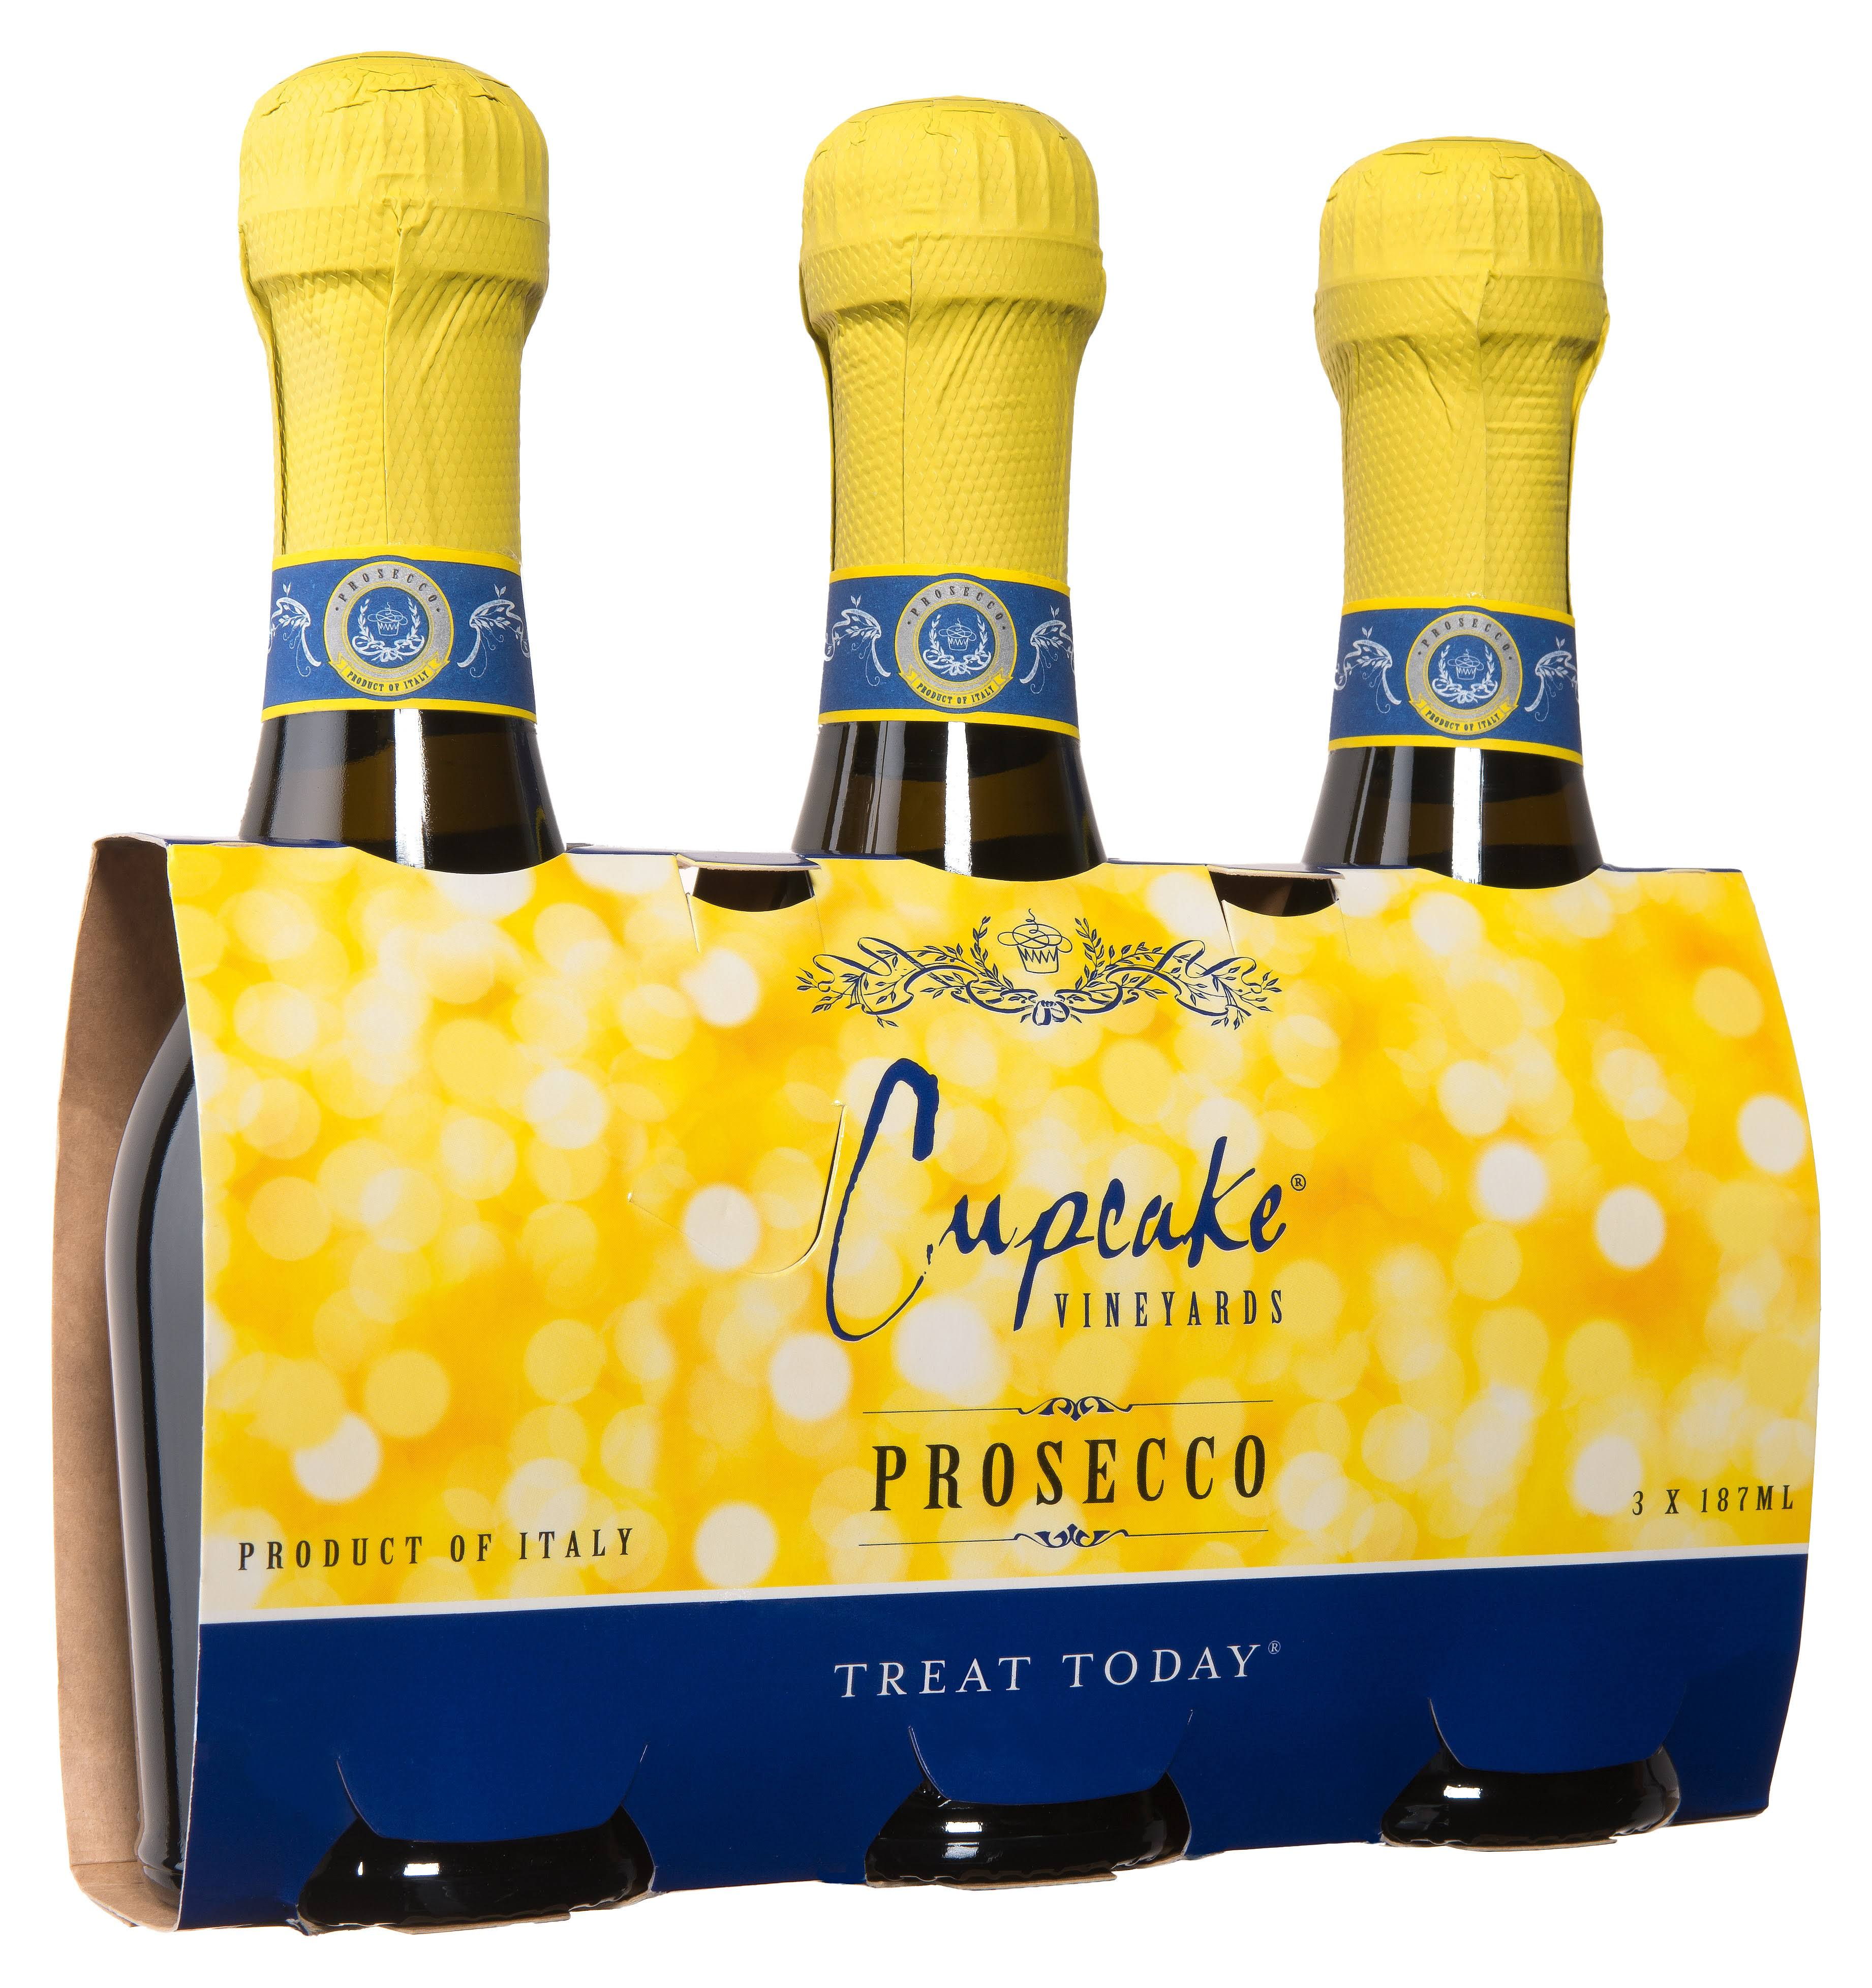 Cupcake Prosecco - 3 pack, 187 ml bottles